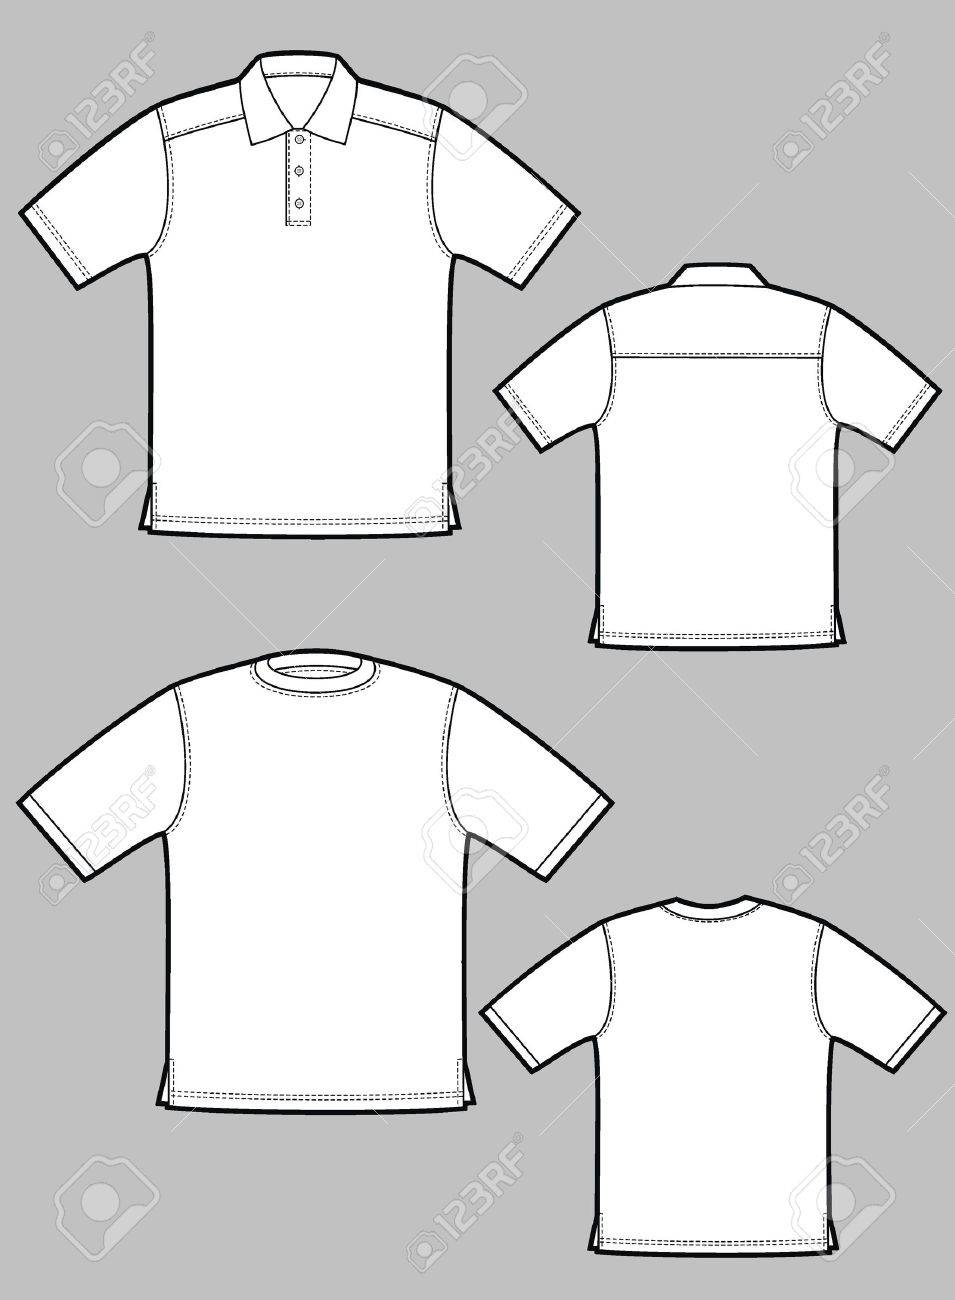 Two kinds of T-shirts with short sleeves Stock Vector - 6217448